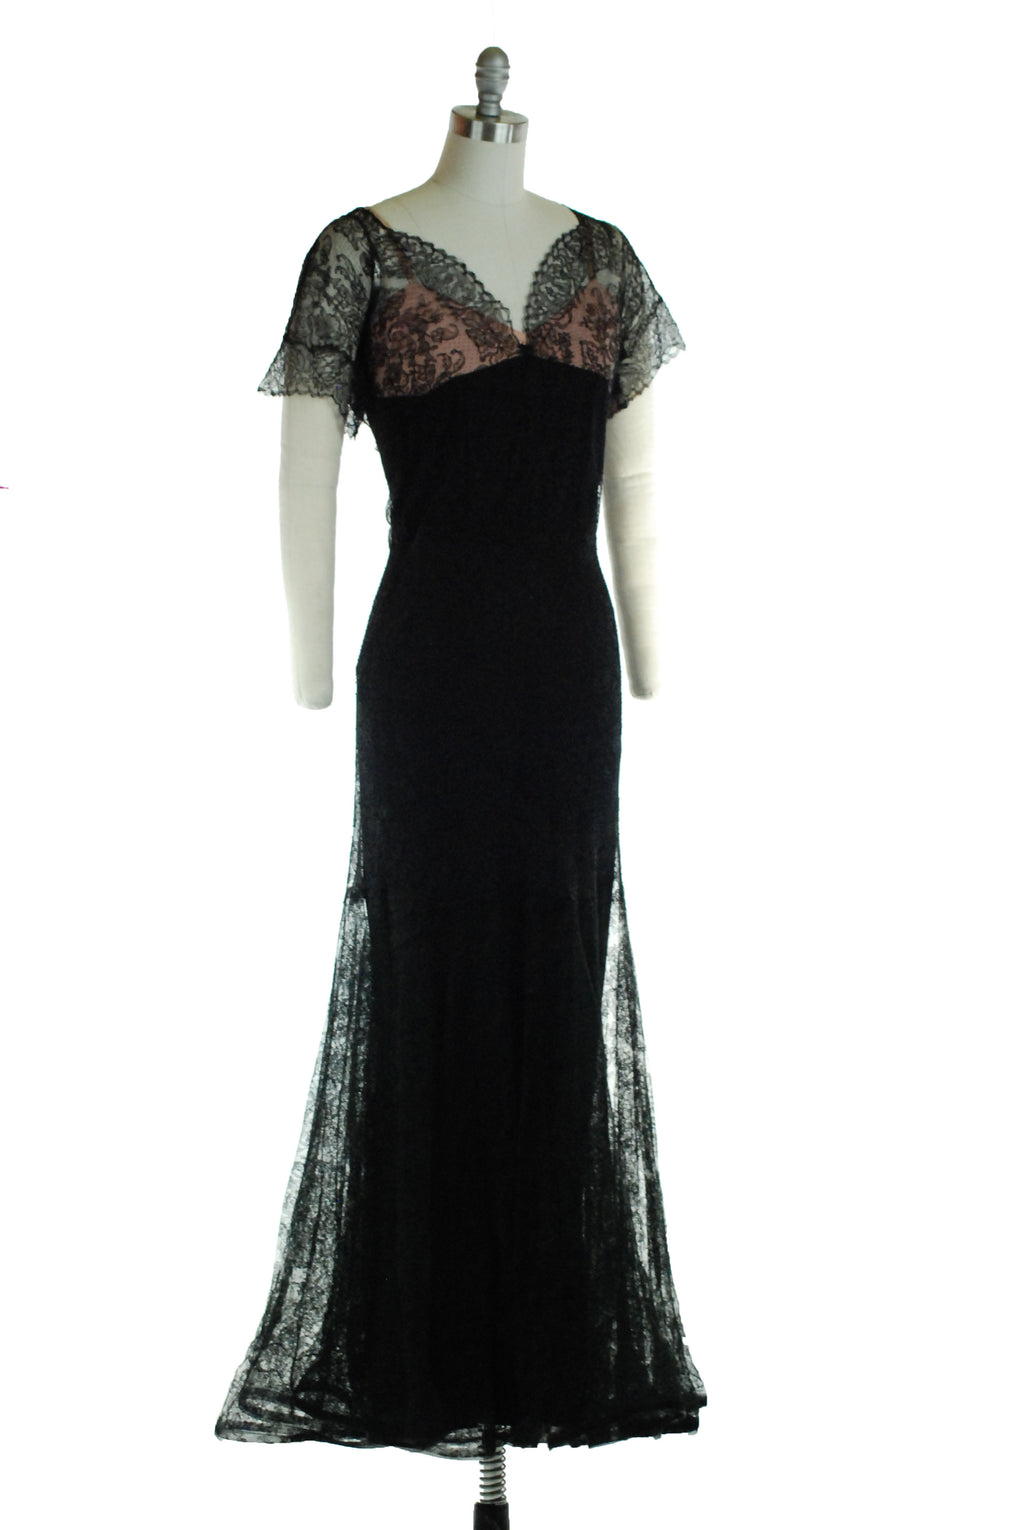 Alluring Late 1930s Nude Illusion and Black Lace Evening Gown with Sheer Sleeves